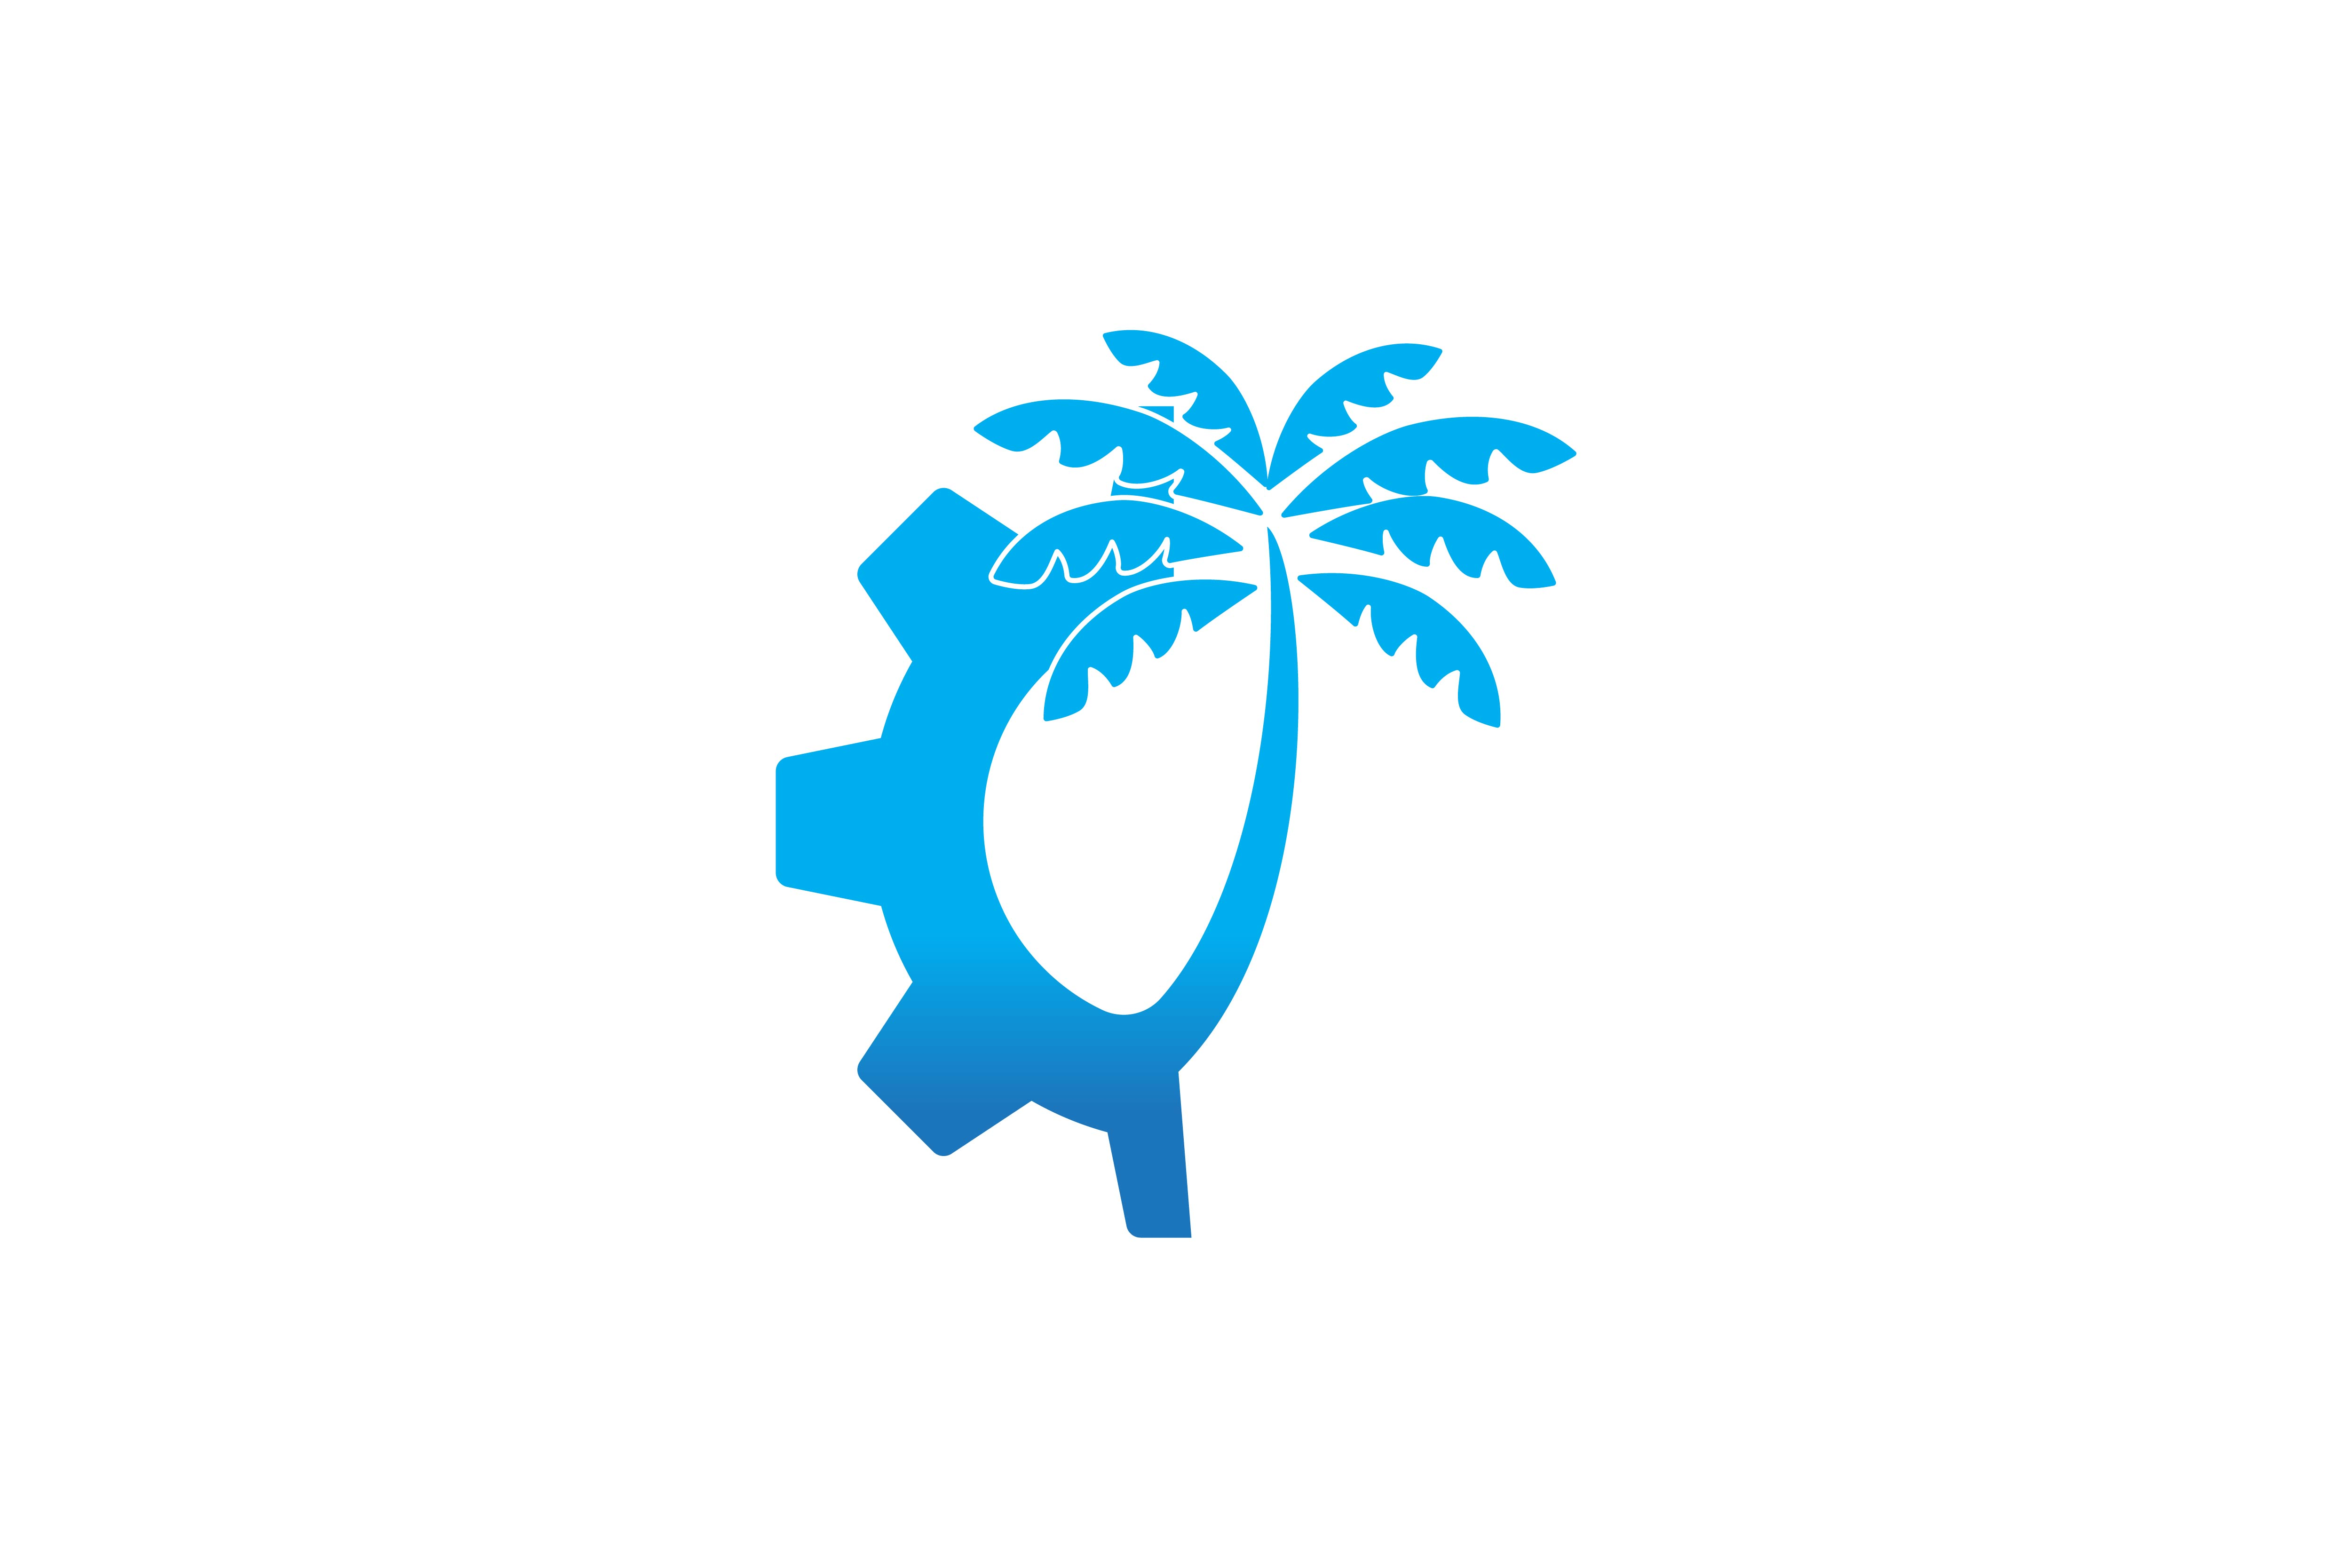 Download Free Gear And Palm Tree Logo Graphic By Yahyaanasatokillah Creative for Cricut Explore, Silhouette and other cutting machines.